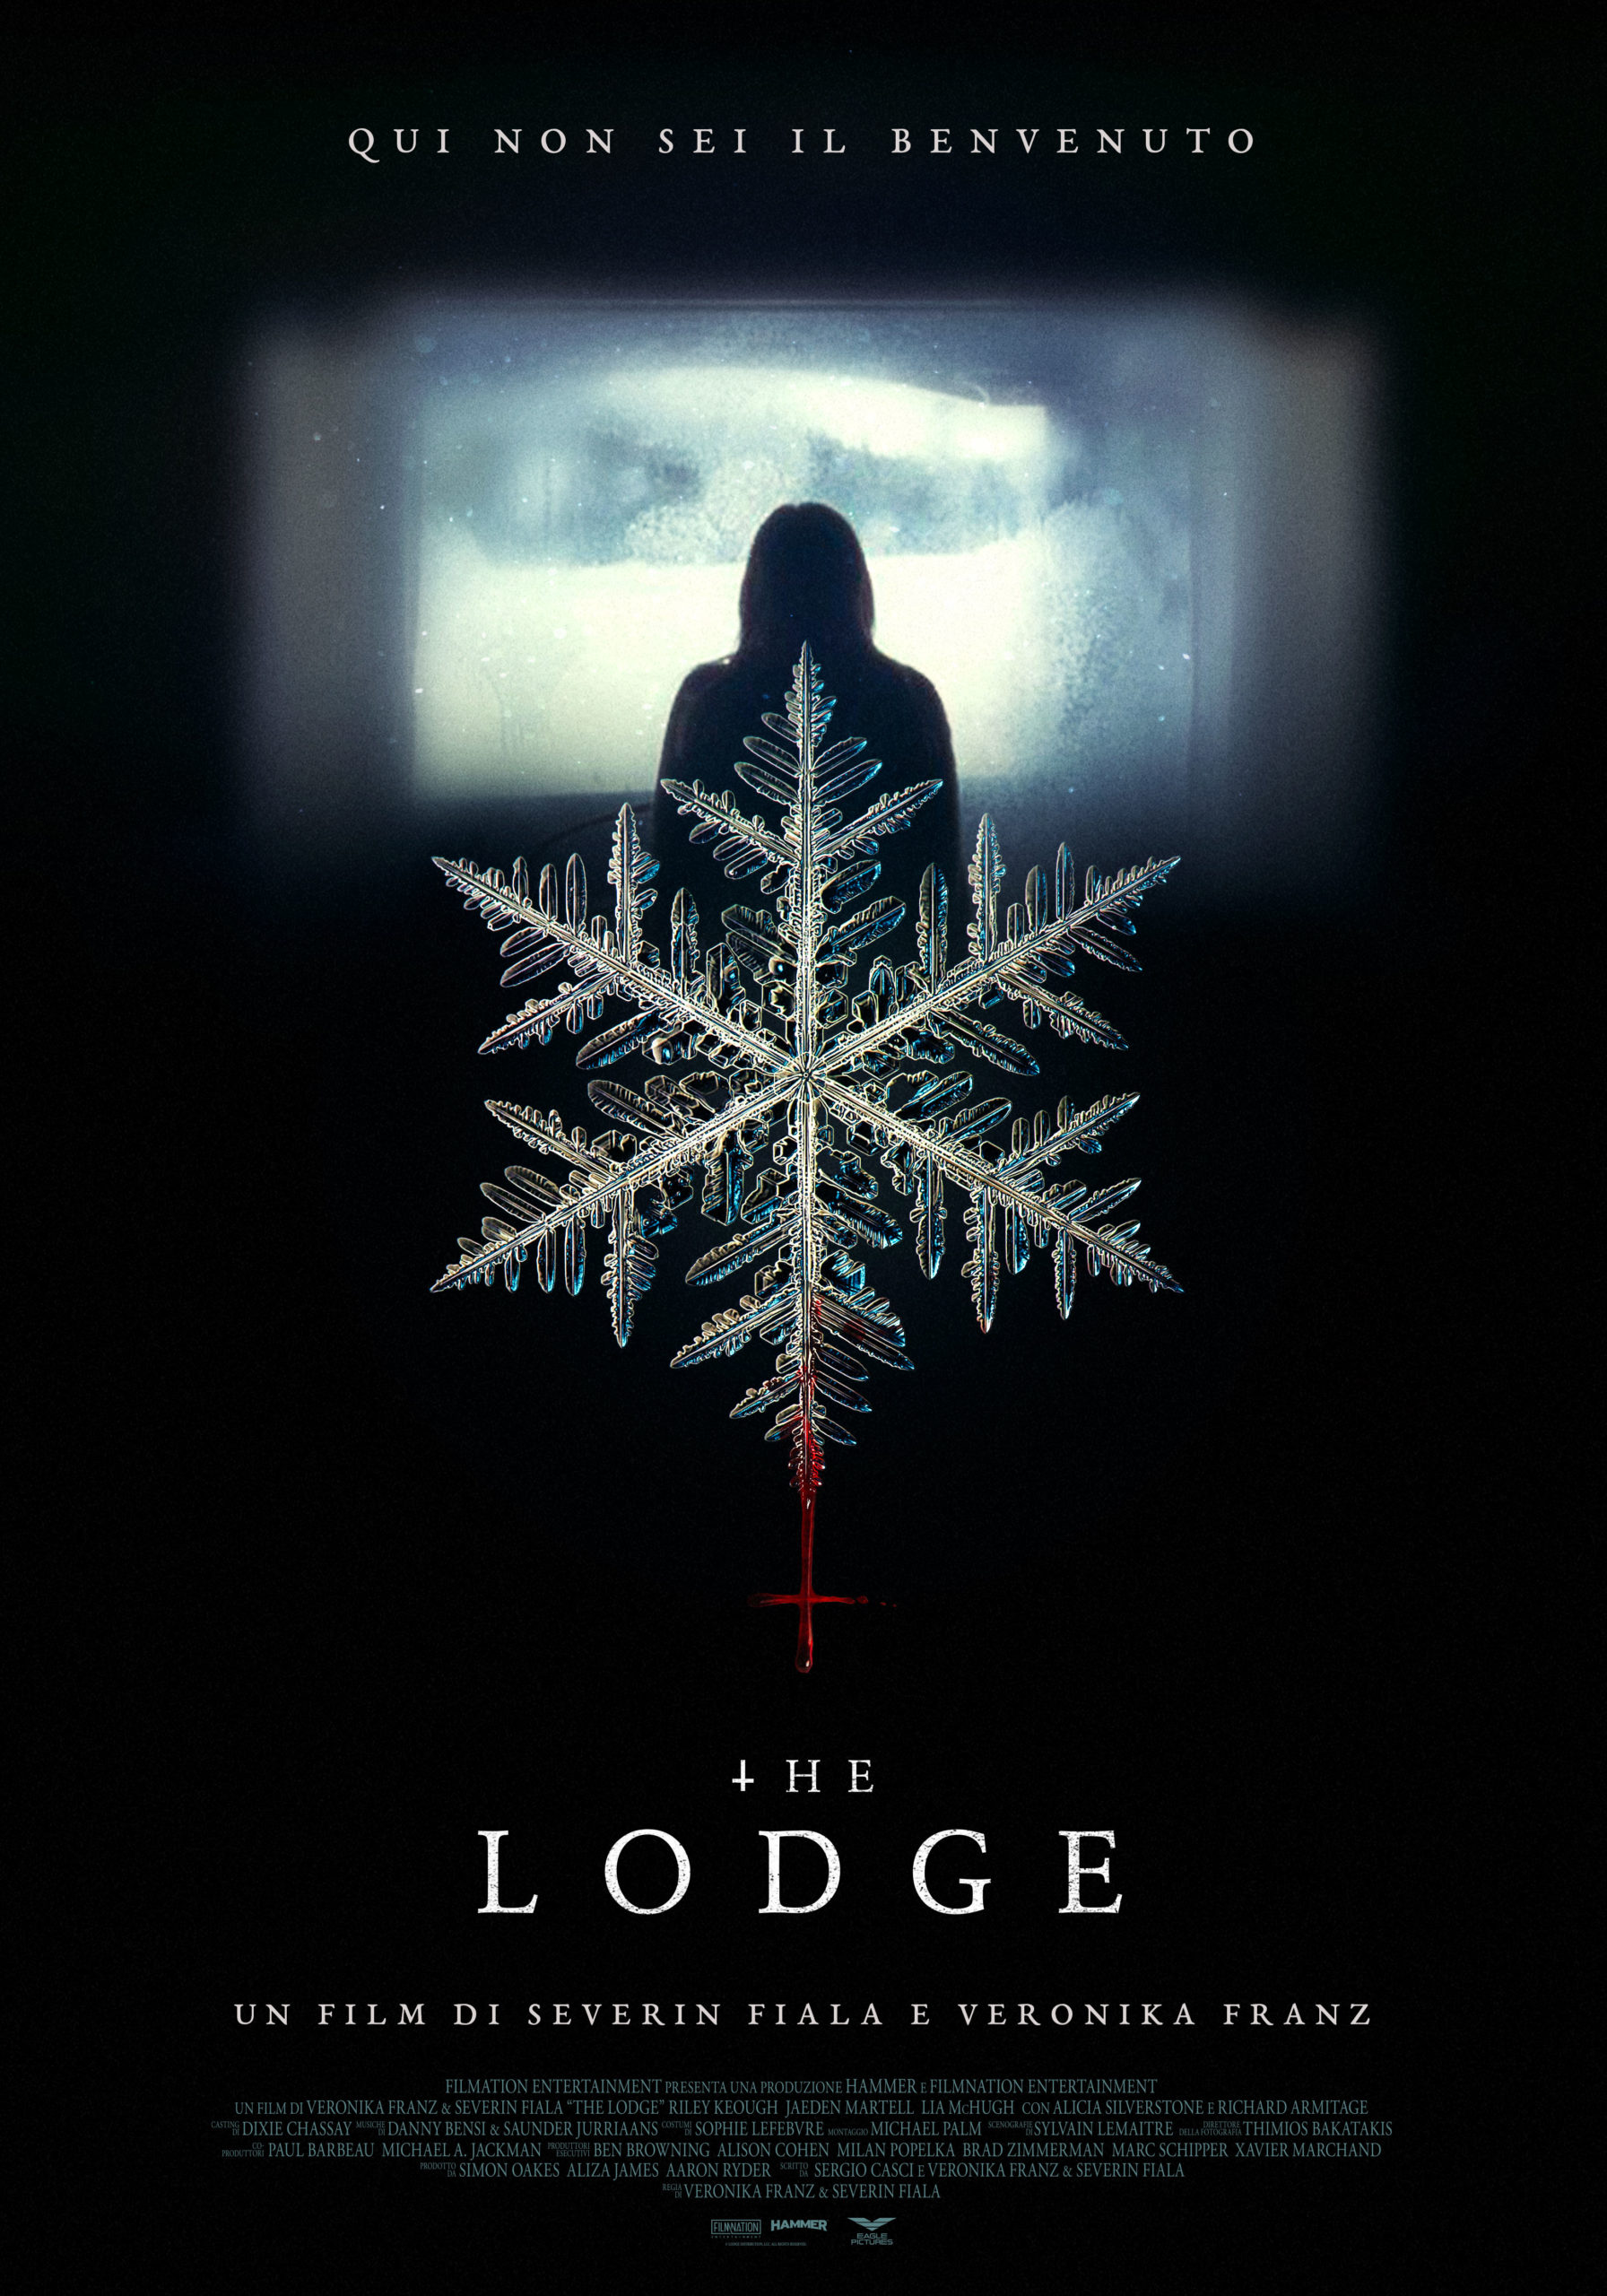 The Lodge_POSTER.jpg